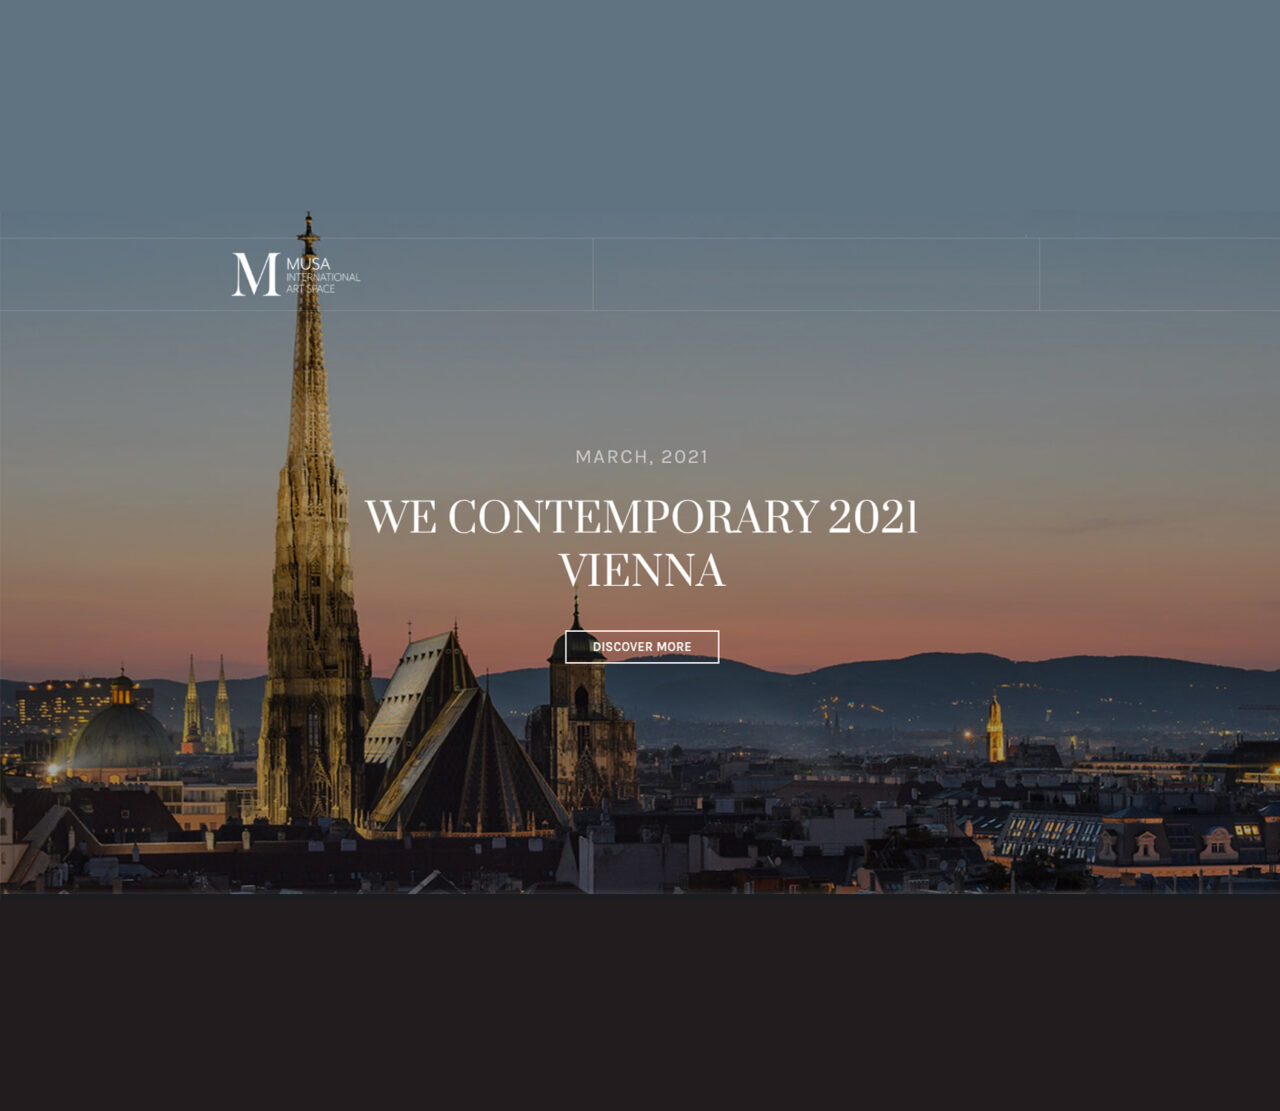 We Contemporary Vienna image